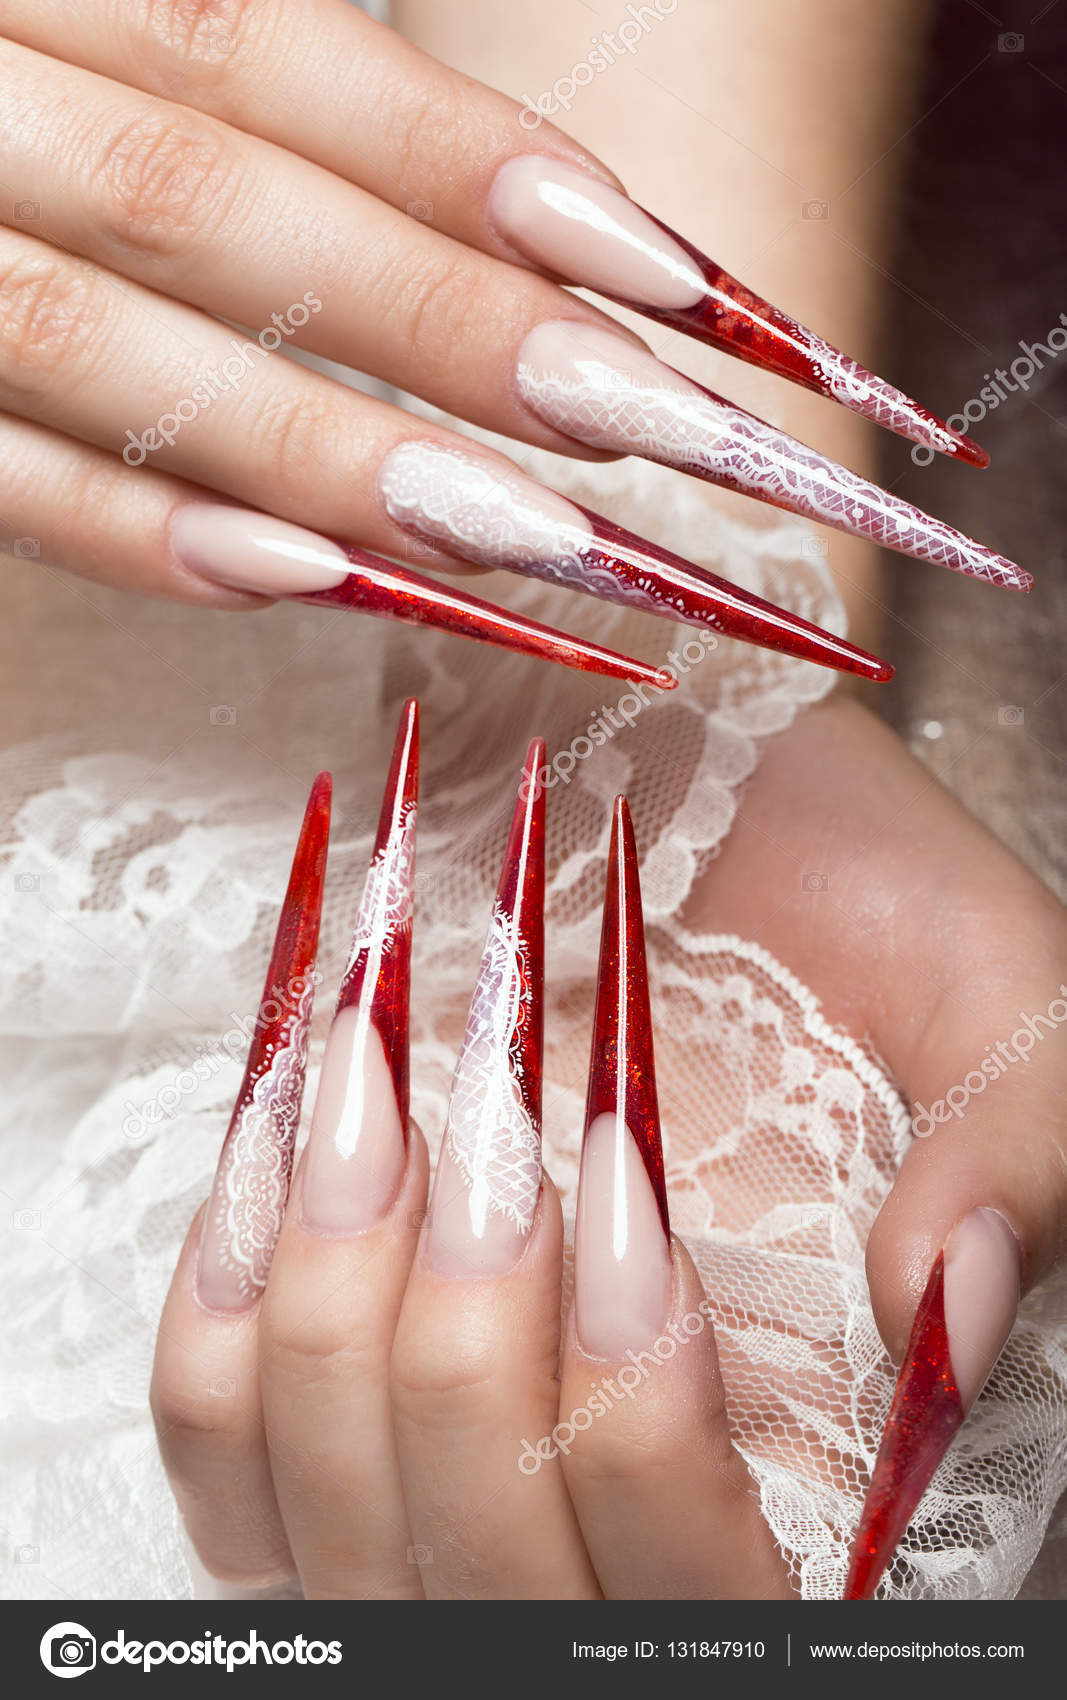 Long Beautiful Manicure With Lace On Female Fingers Nails Design